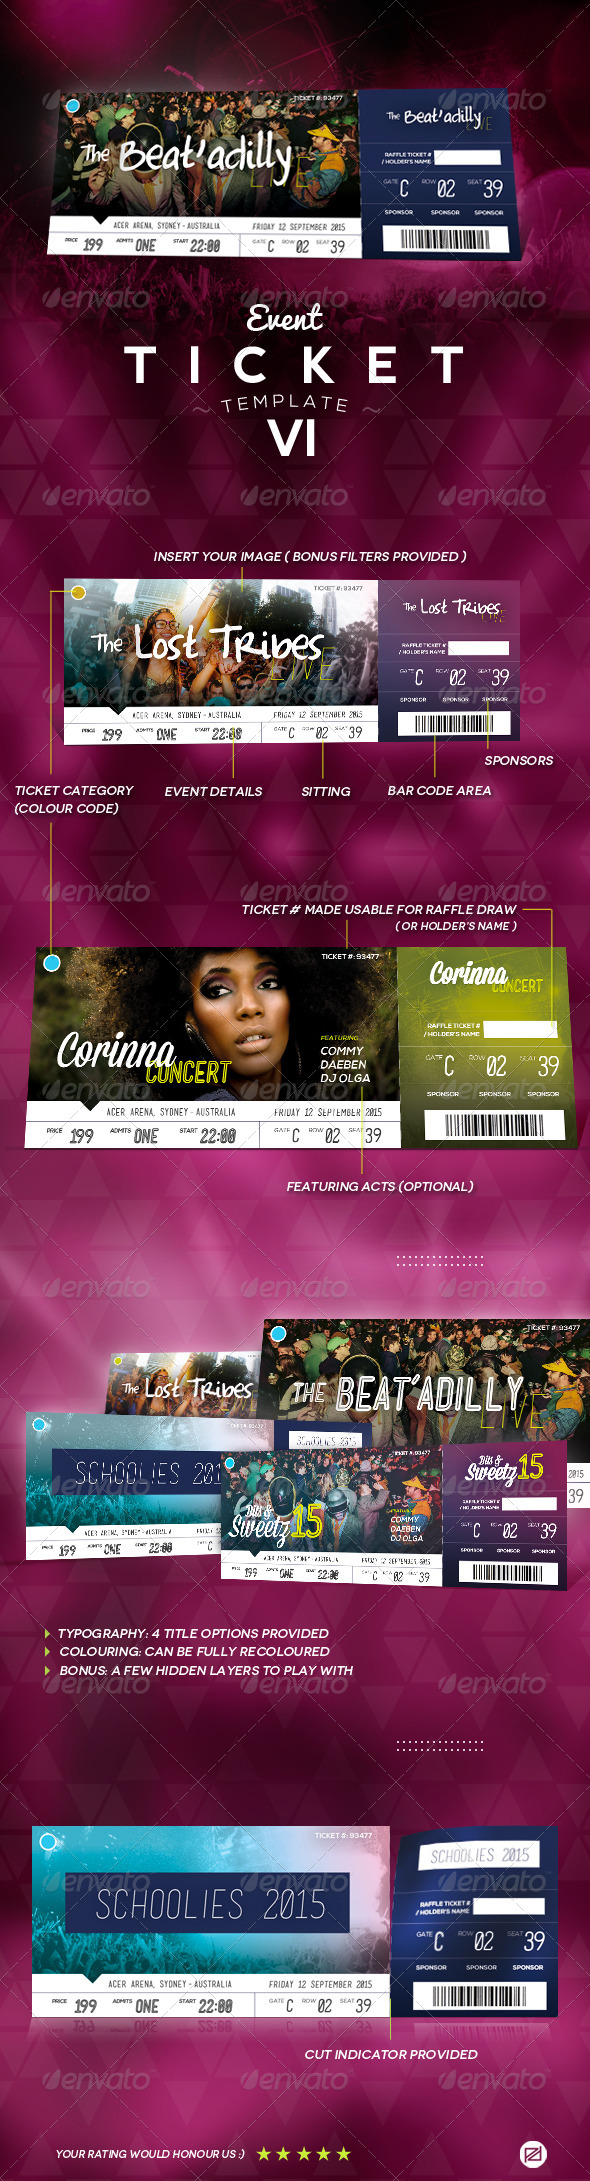 GraphicRiver Event Ticket Template VI 8171314